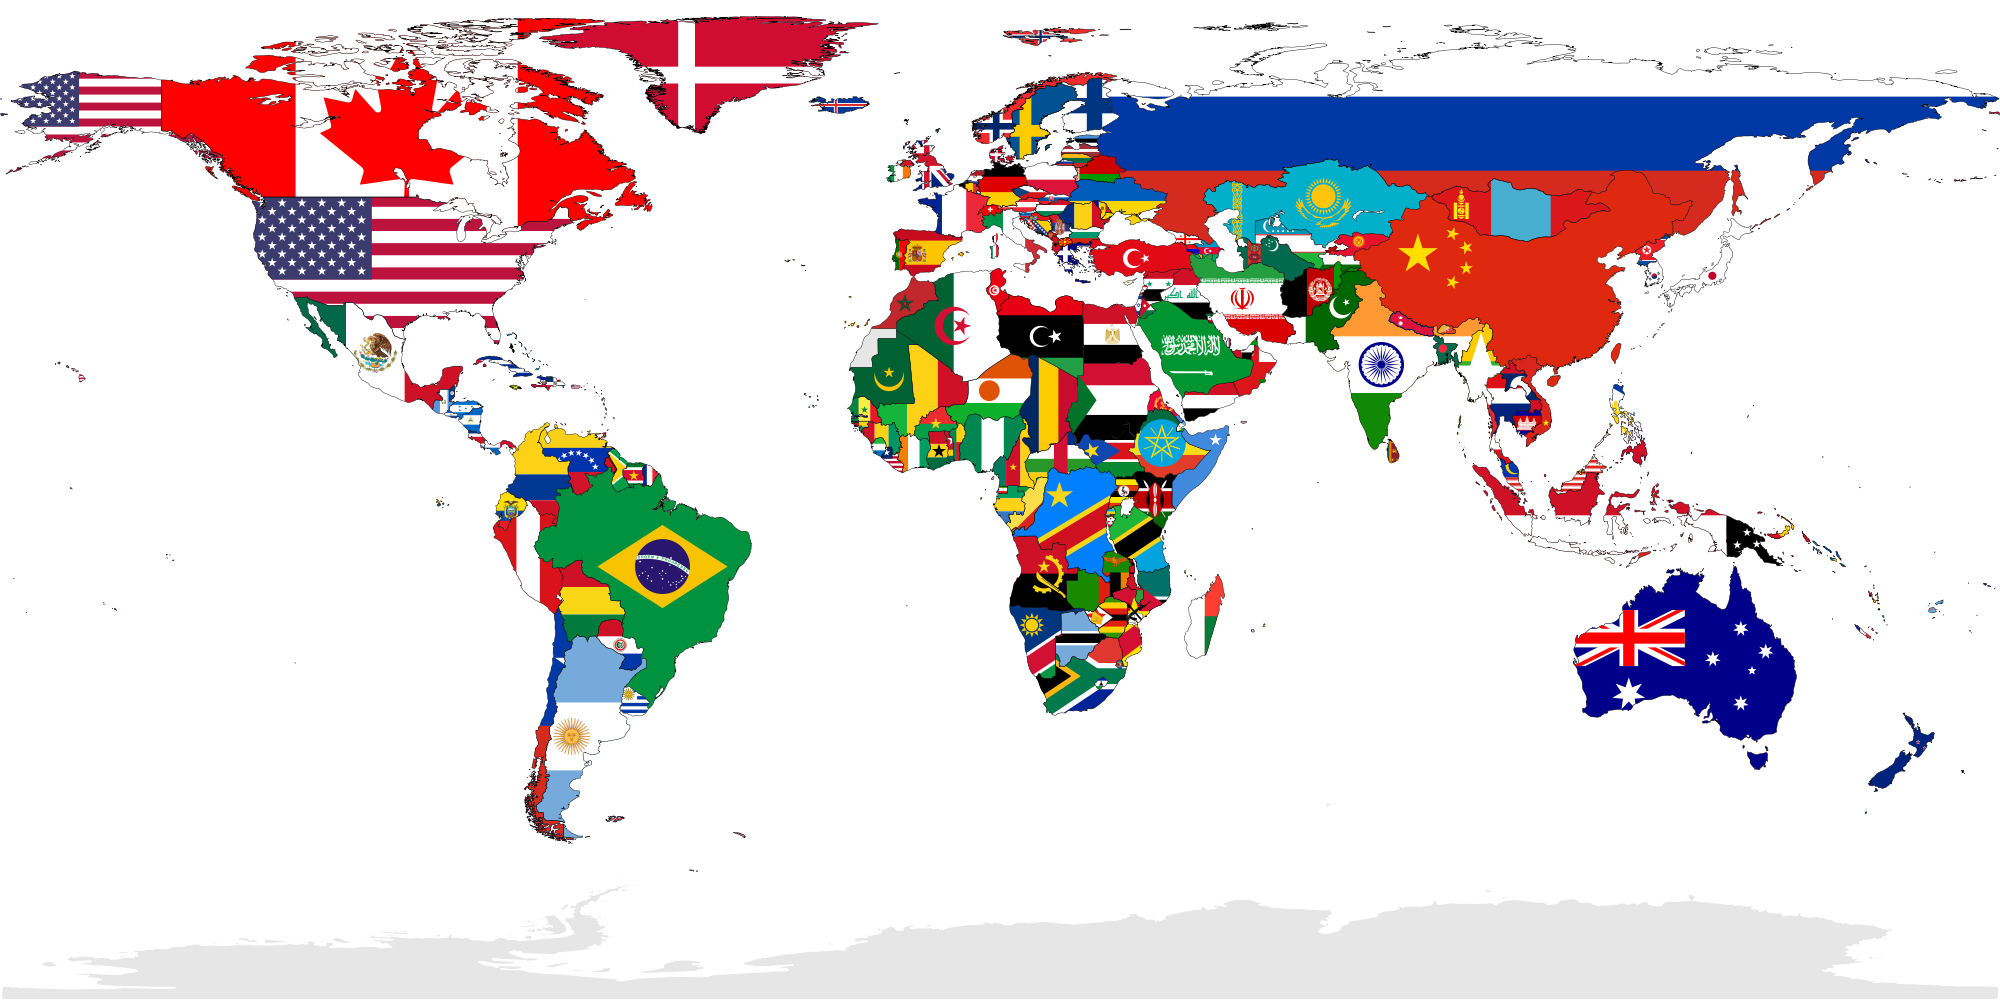 Flag-map of the world